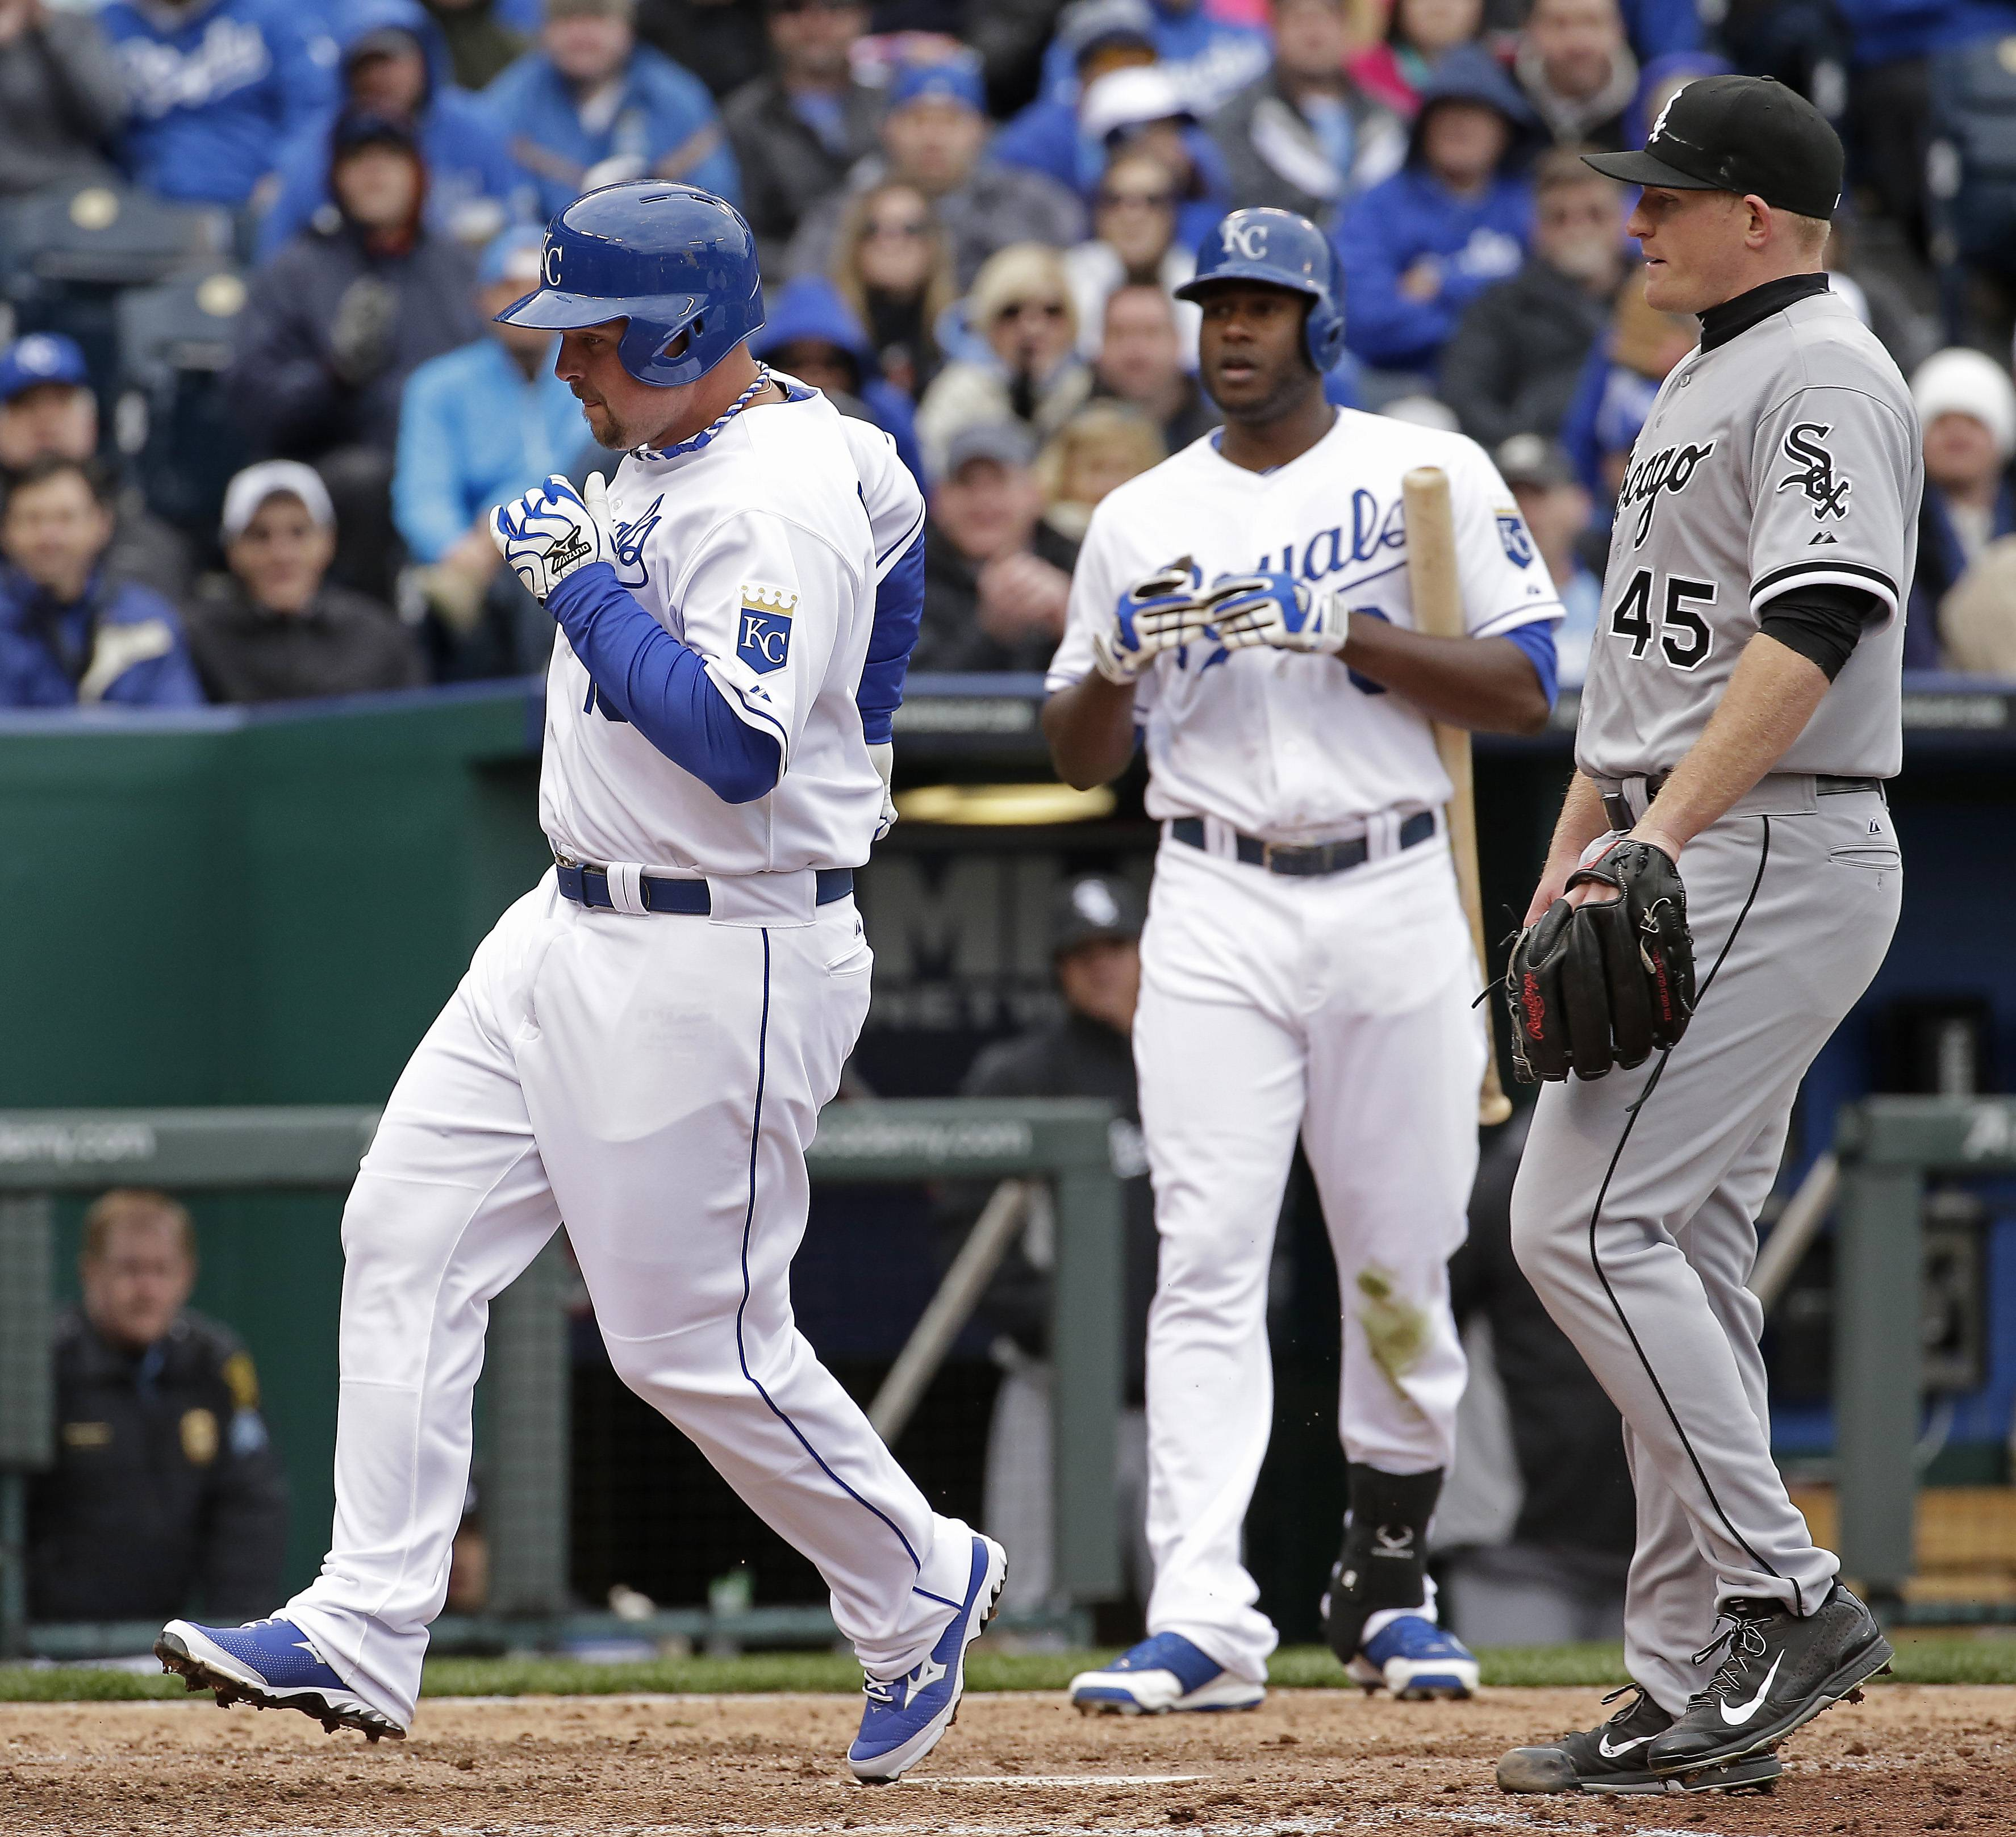 Kansas City Royals' Billy Butler, left, scores on a wild pitch thrown by White Sox pitcher Erik Johnson (45) during the fifth inning of Friday's home opener in Kansas City, Mo.